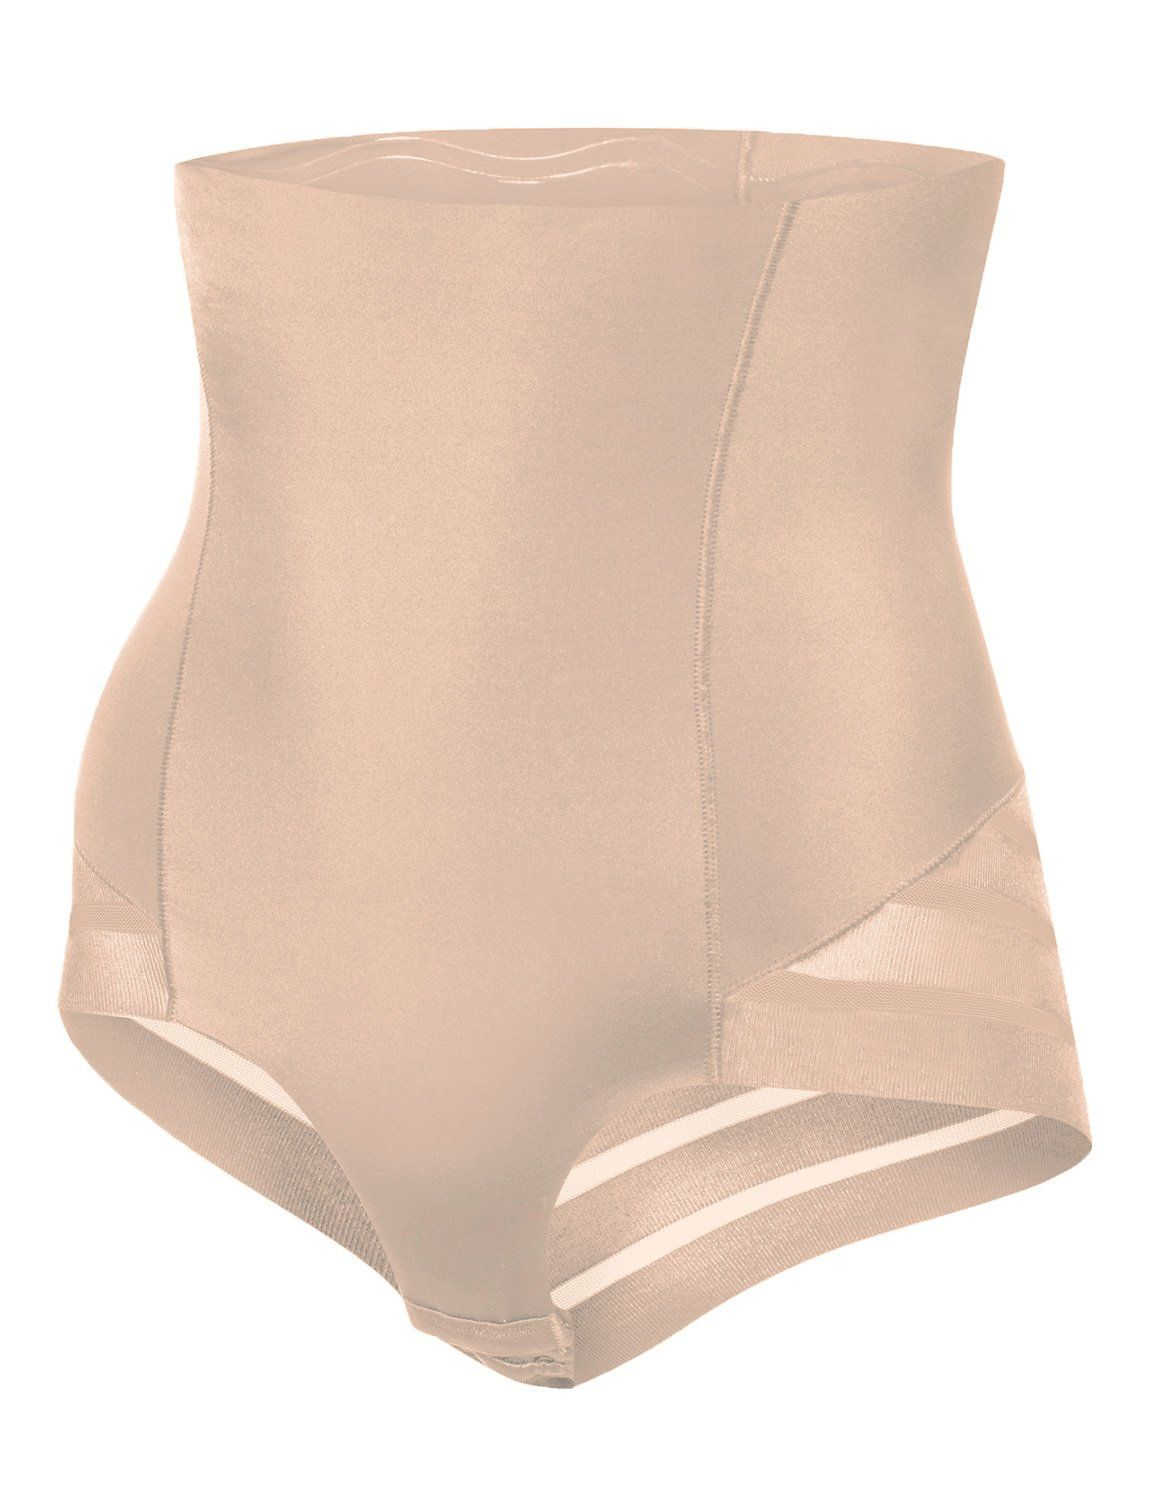 75000fa25814ca Julimex Shapewear 141 Mesh womens high waisted briefs smooth ...